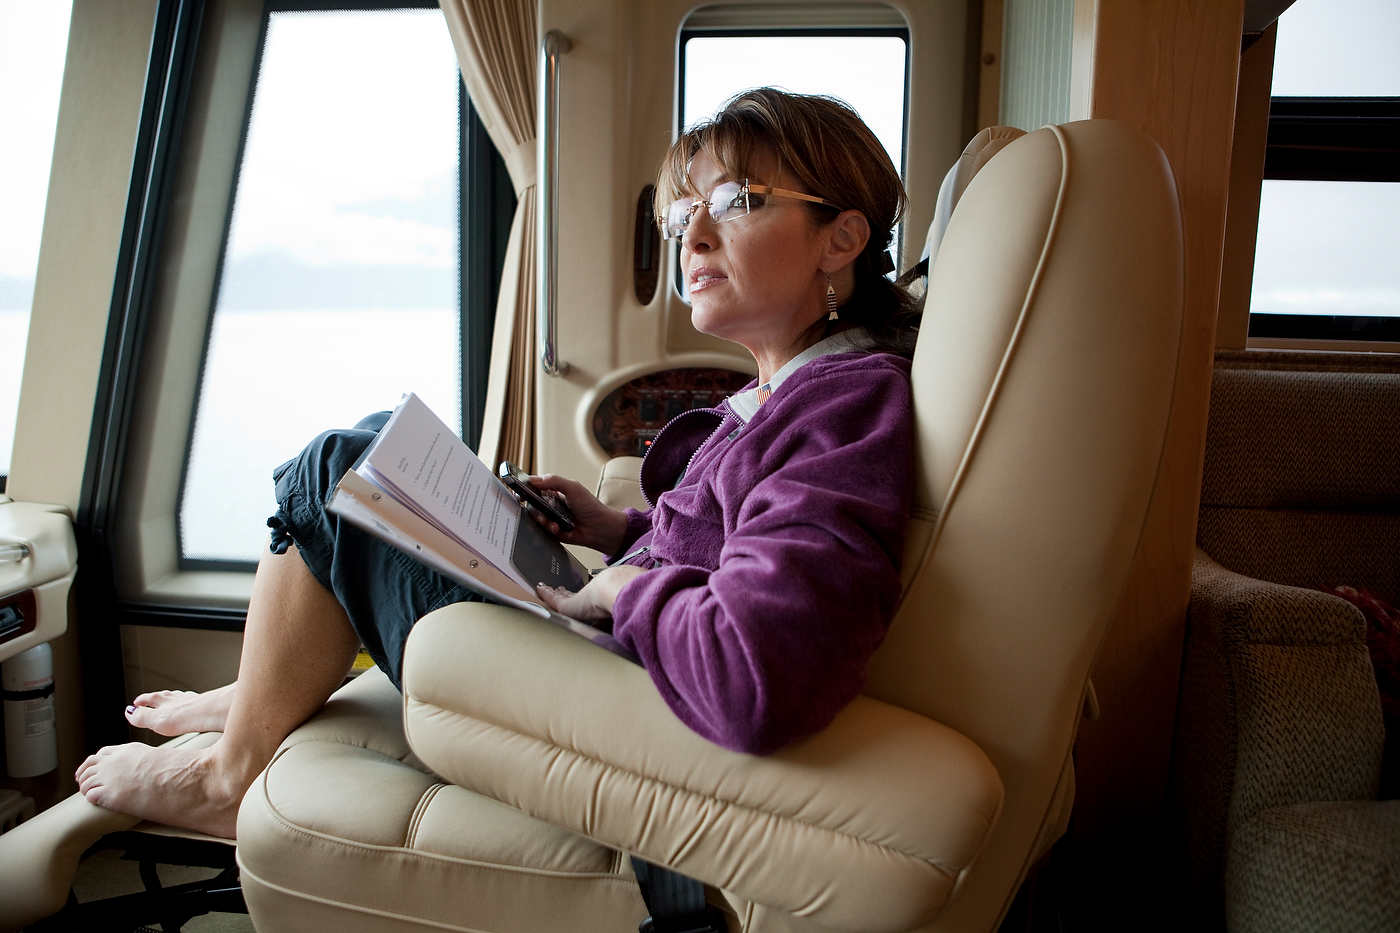 Sarah Palin heads to Hommer in the family RV for a fishing trip.